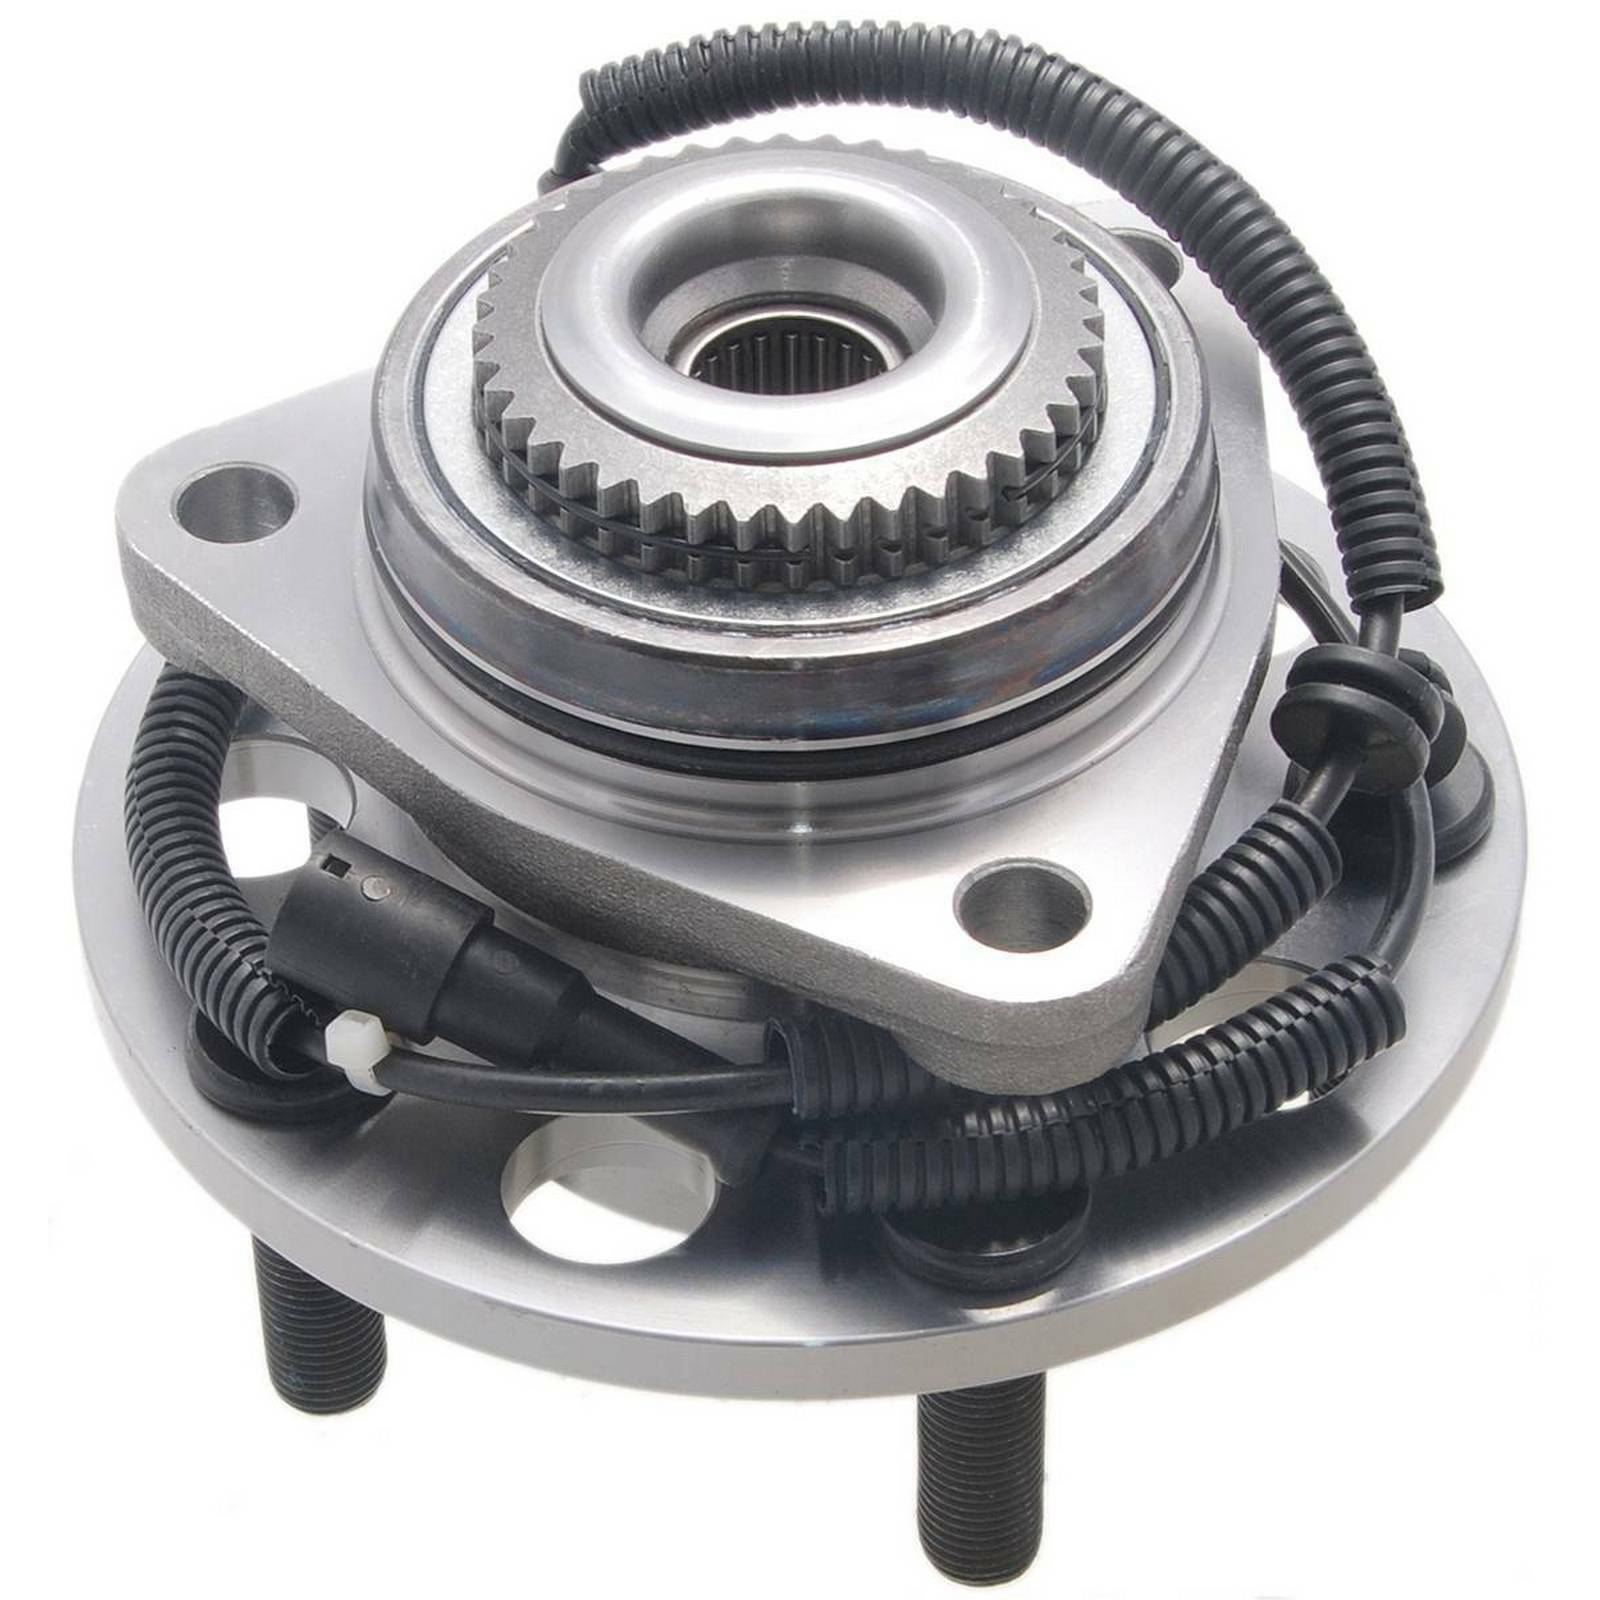 AP01 Front Left Wheel Bearing Kit For SSANGYONG ACTYON I SPORTS KYRON REXTON 2.0-3.2 4x4 4142009400 Wheel Hub Bearing